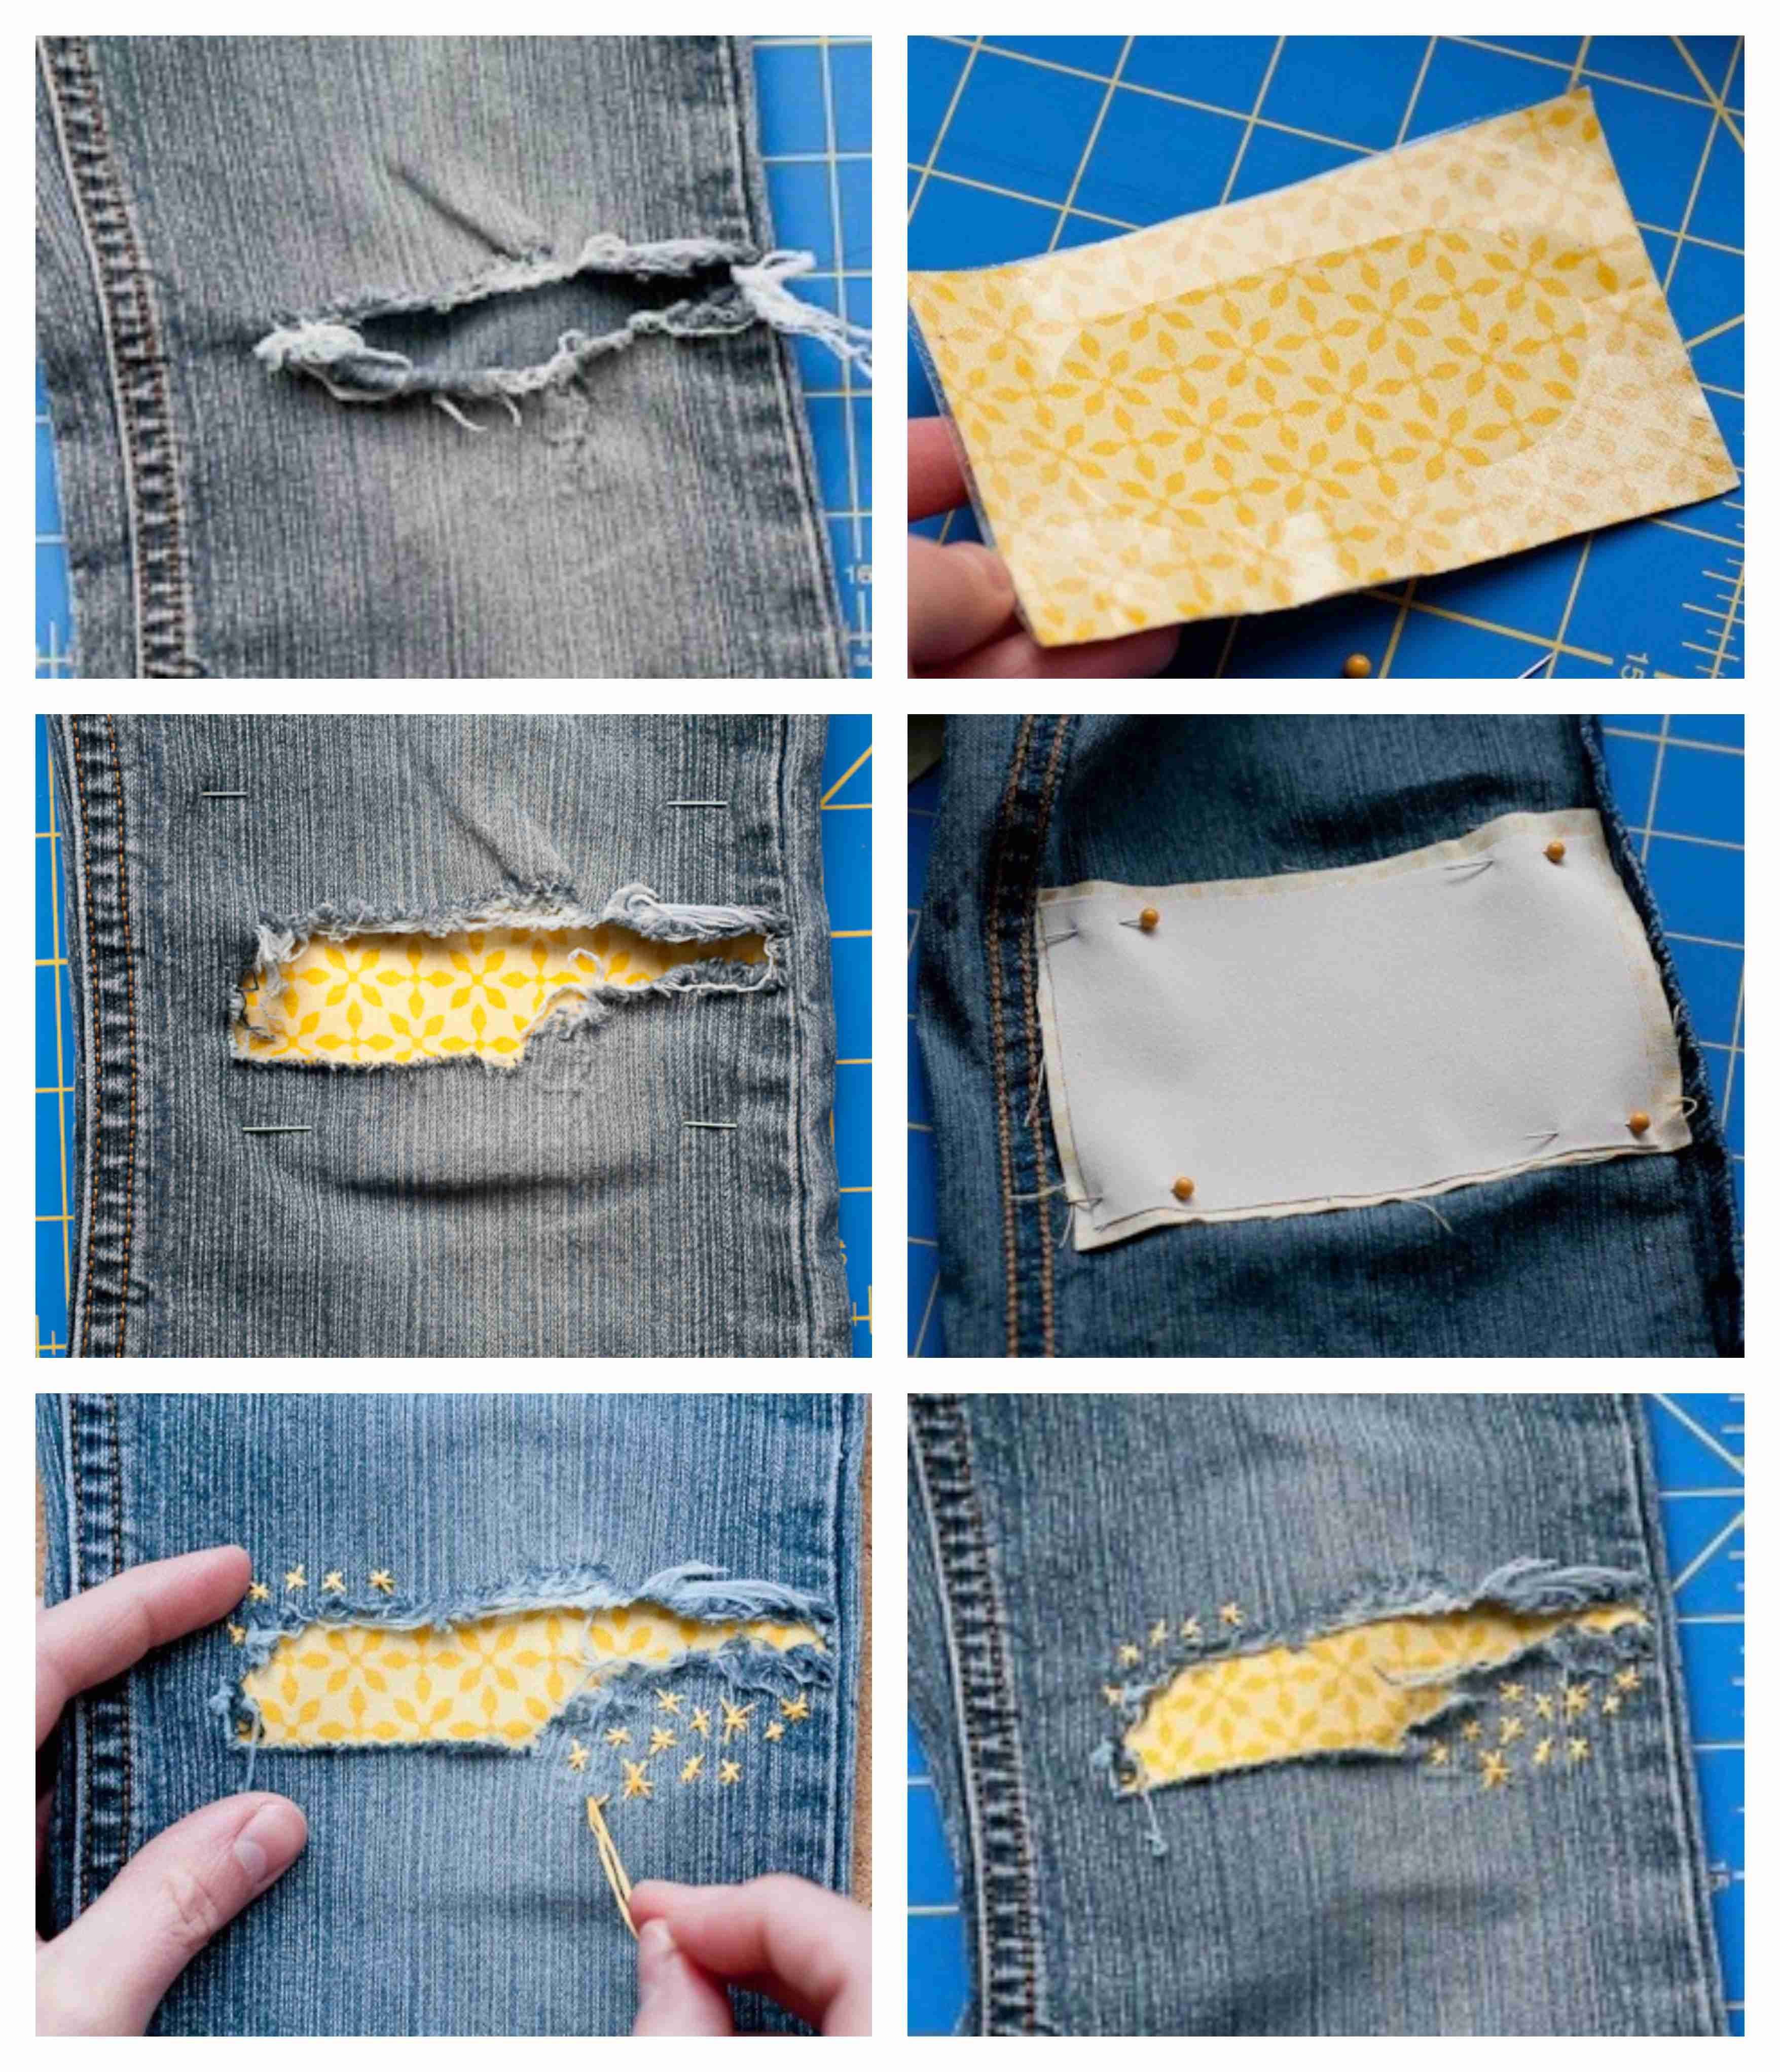 Under Patch:  1.Cut Heat n' Bond to the same size as your fabric patch - leave a hole in the center to align w/ the jeans hole.  2.Pin it directly behind the hole in the knee & iron as directed.  **3.For increased strength use Heat n' Bond to attach sturdy twill to the back of the fabric.  4. With embroidery floss sew some stars — they'll help keep the patch firmly in place.    (designmom.com) #embroideryfloss